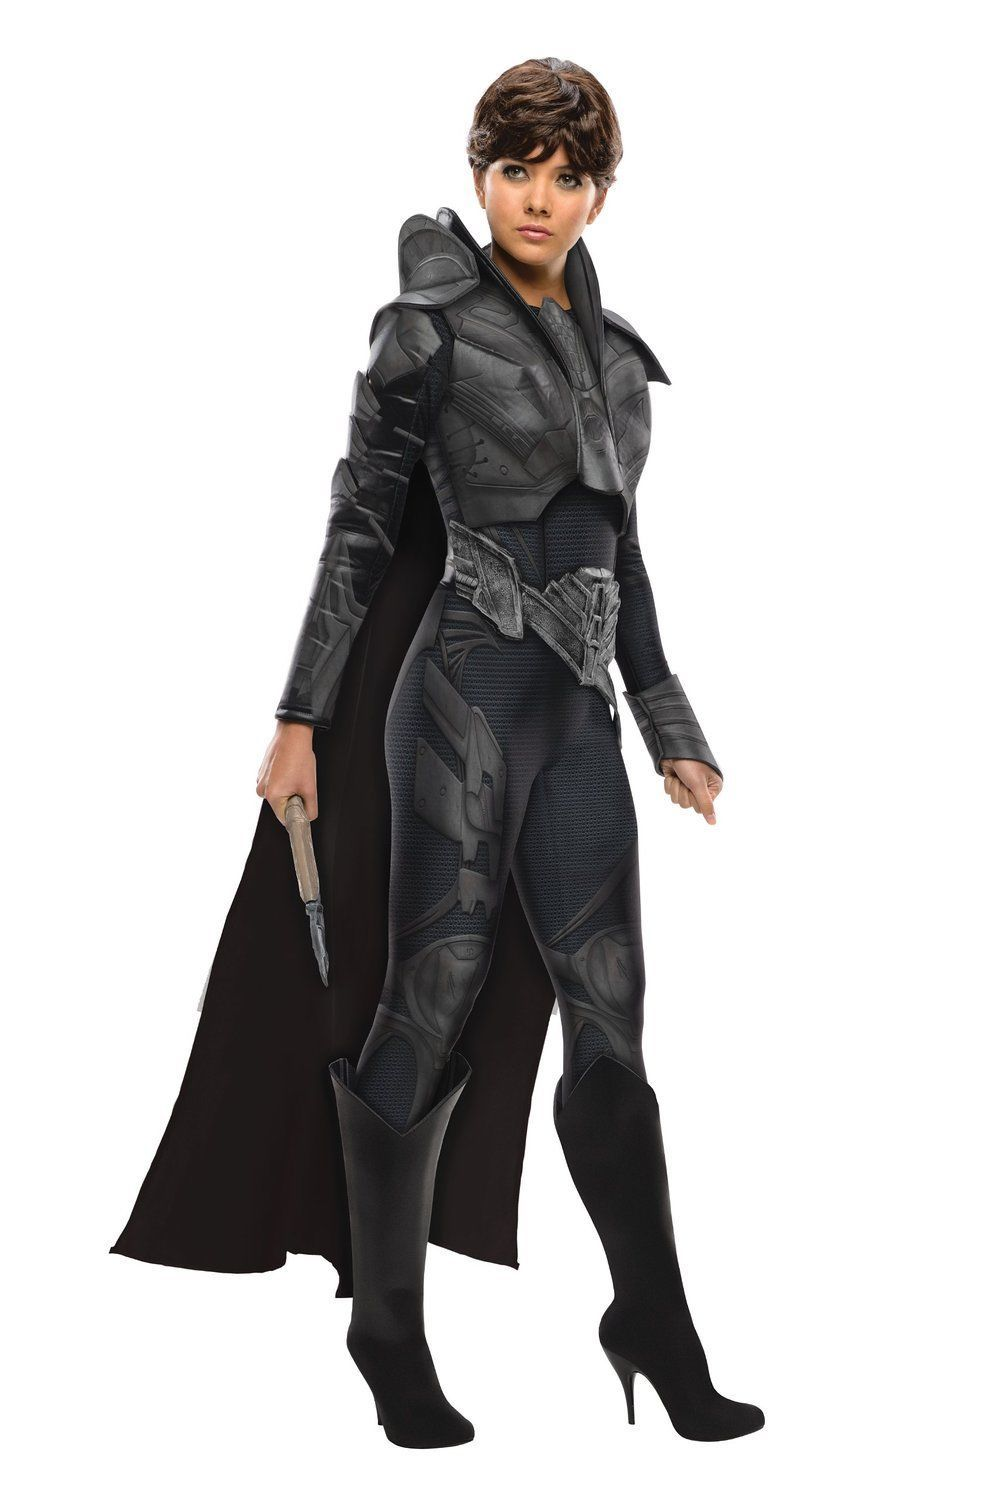 Image 0 of Secret Wishes Superman Man of Steel Black Faora Adult Ladies Costume w/Cape - M